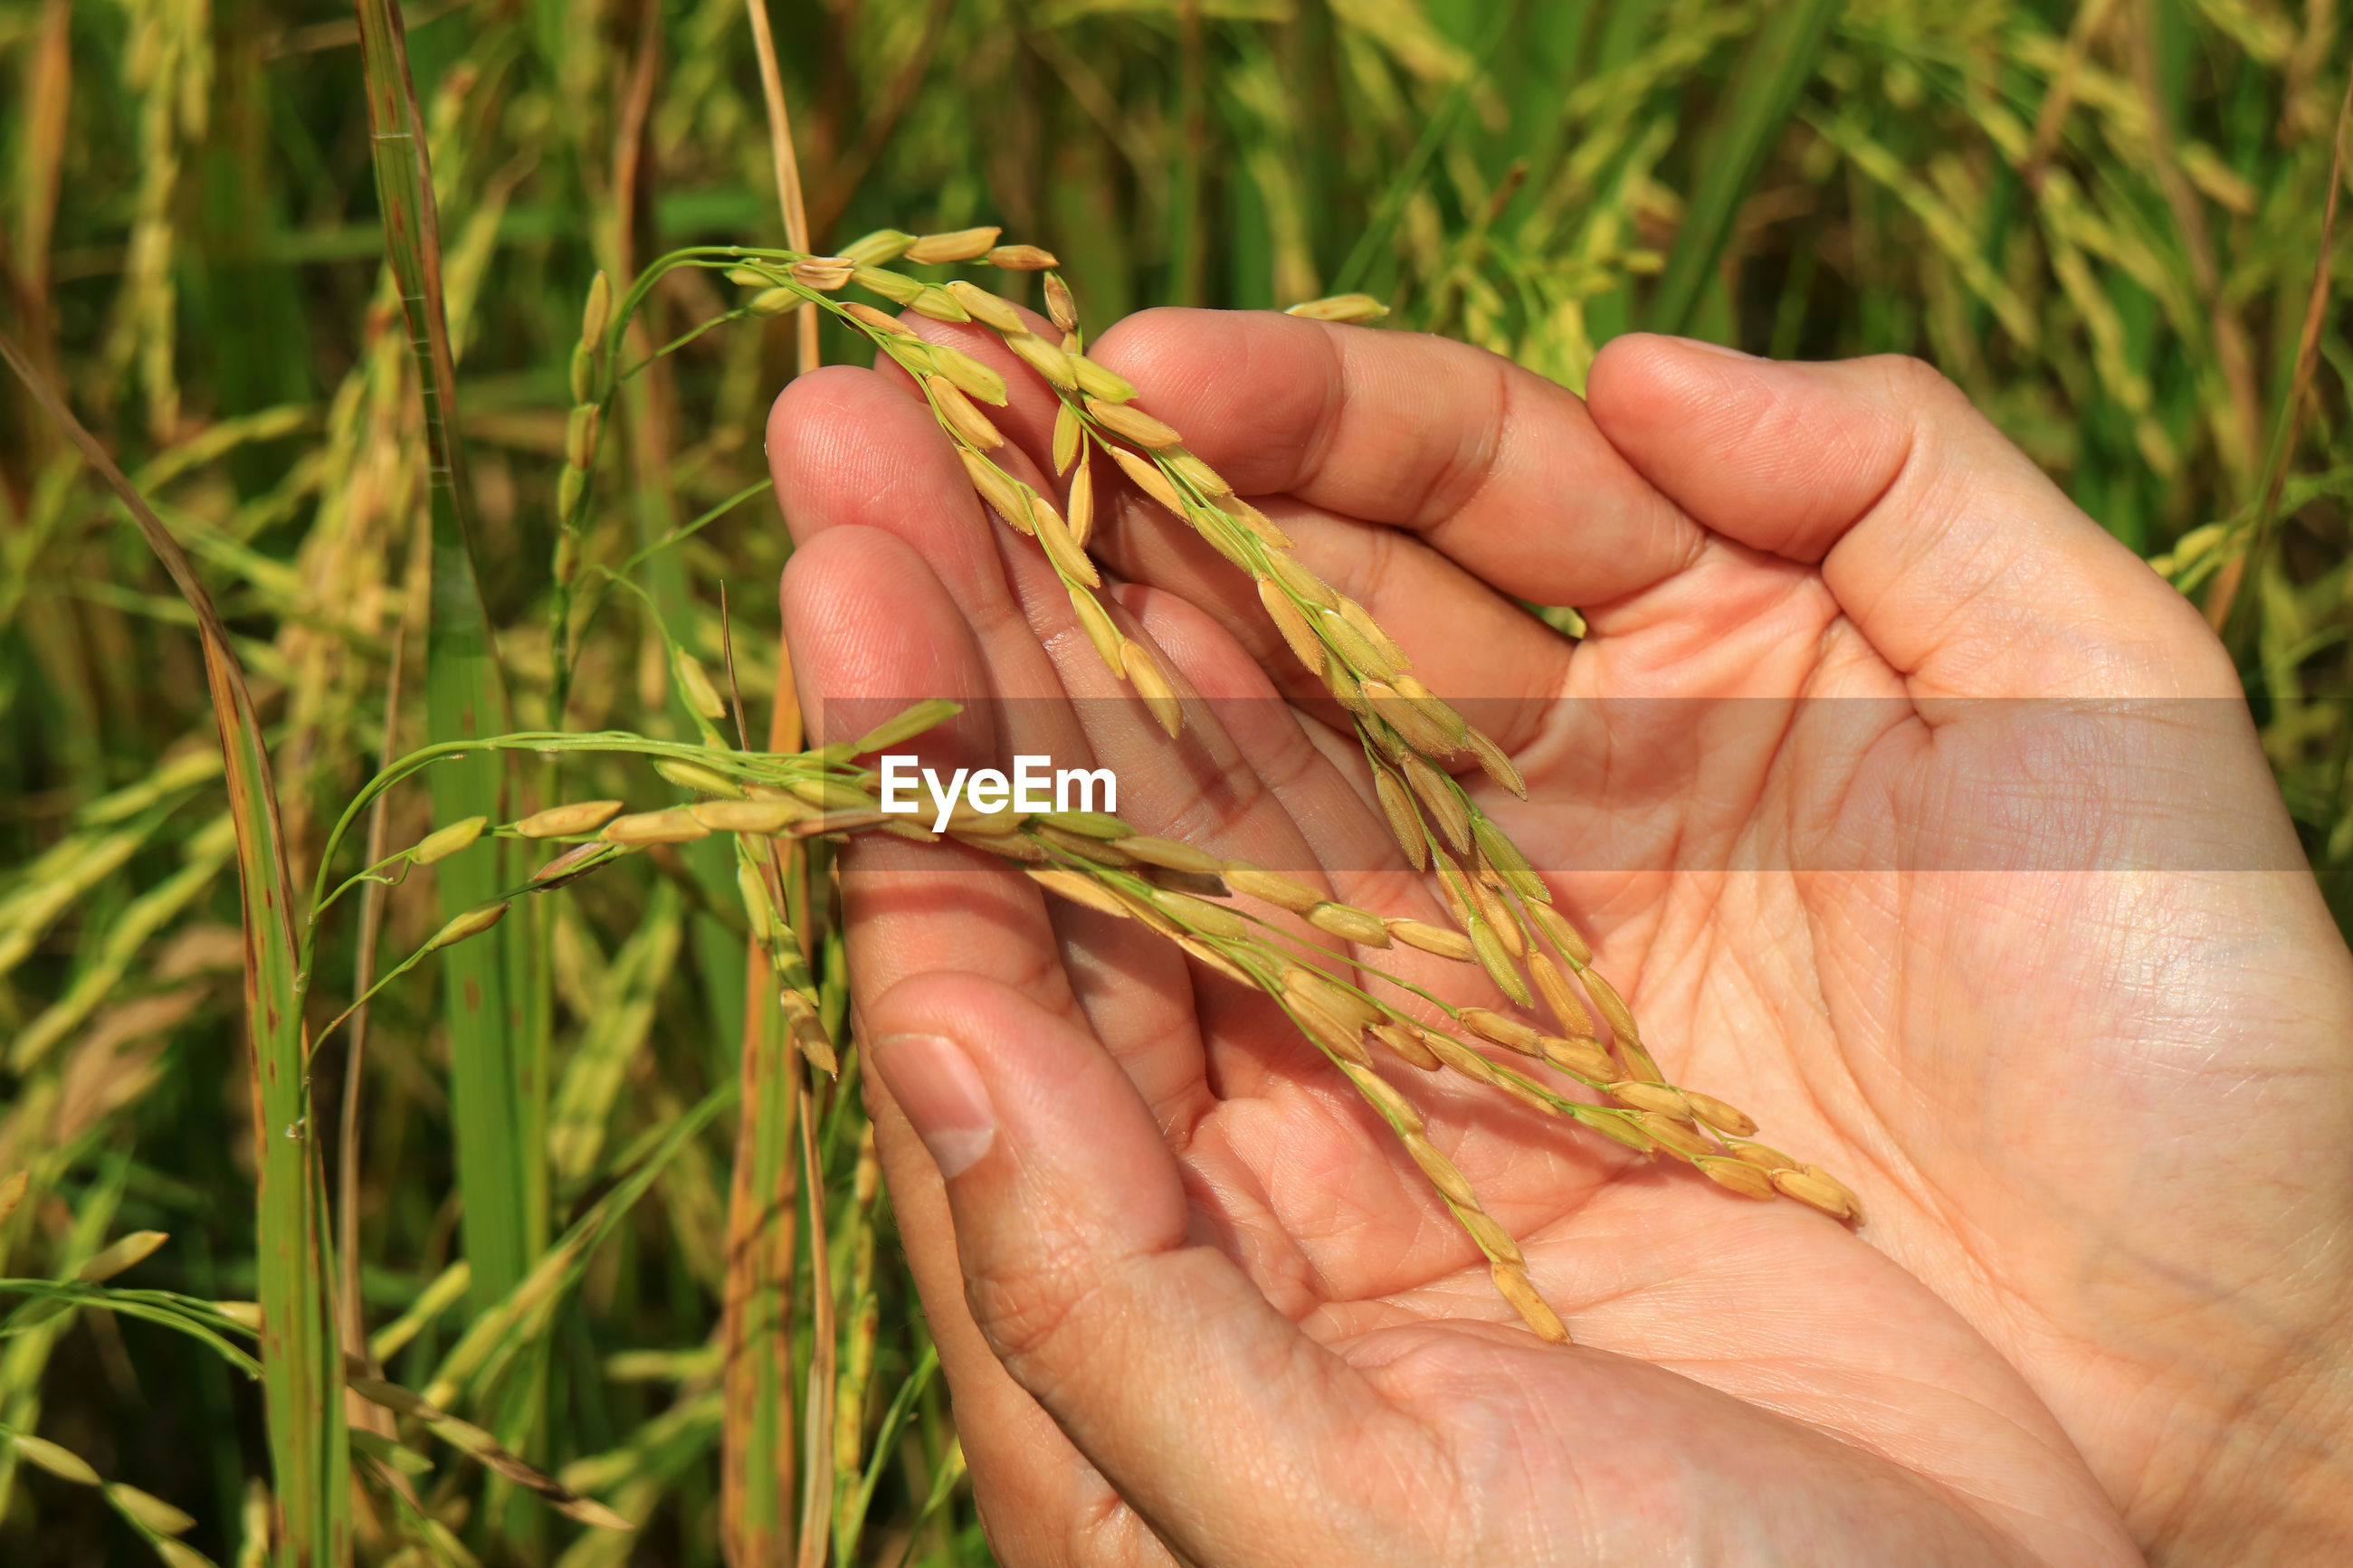 Close-up of cropped hand holding cereal plant at farm